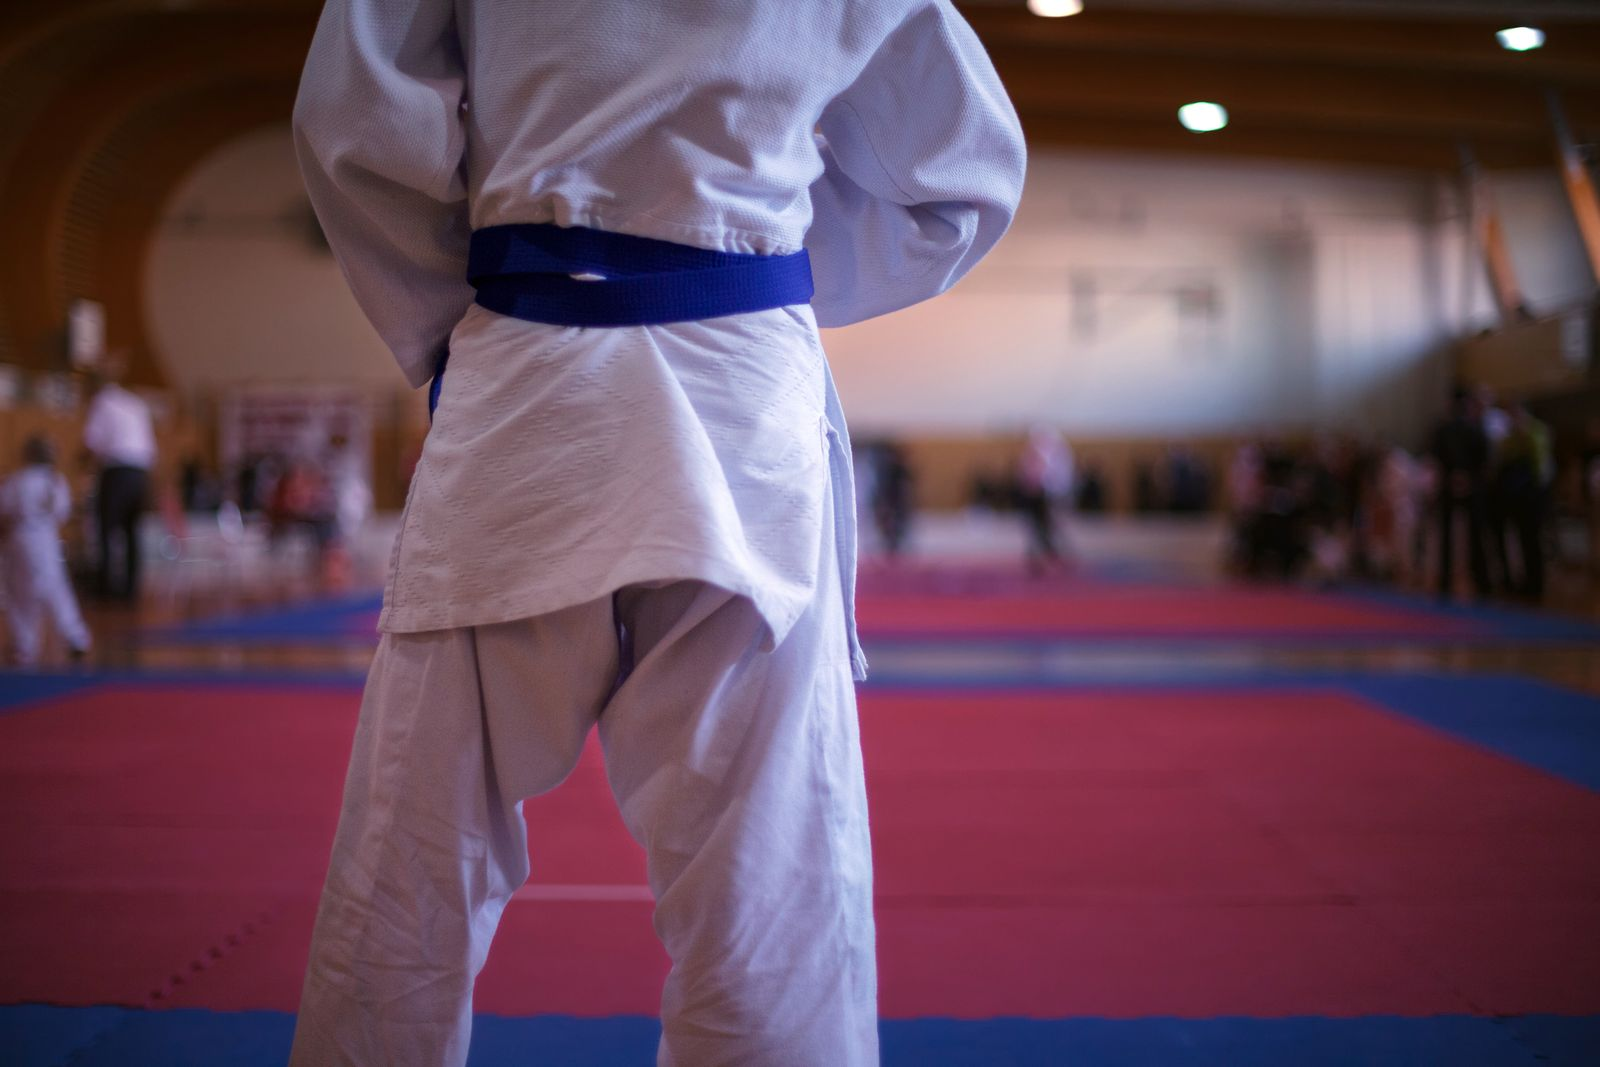 Judo fighter on tatami mat in a gym